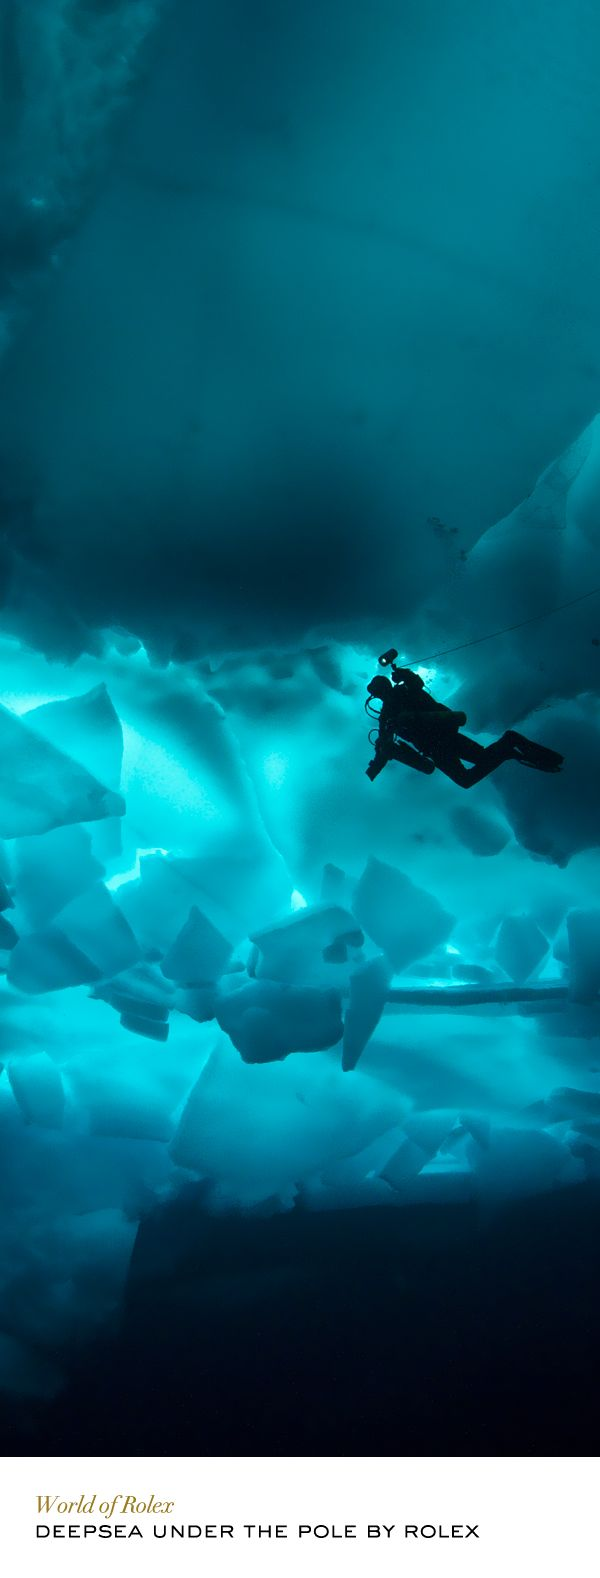 Deepsea Under the Pole by Rolex – a pioneering adventure – combined ski trekking and scuba diving above and under the North Pole ice cap. für   Sie   hier   vom   Gentlemansclub   gepinnt . . . - schauen Sie auch mal im Club vorbei - www.thegentlemanclub.de